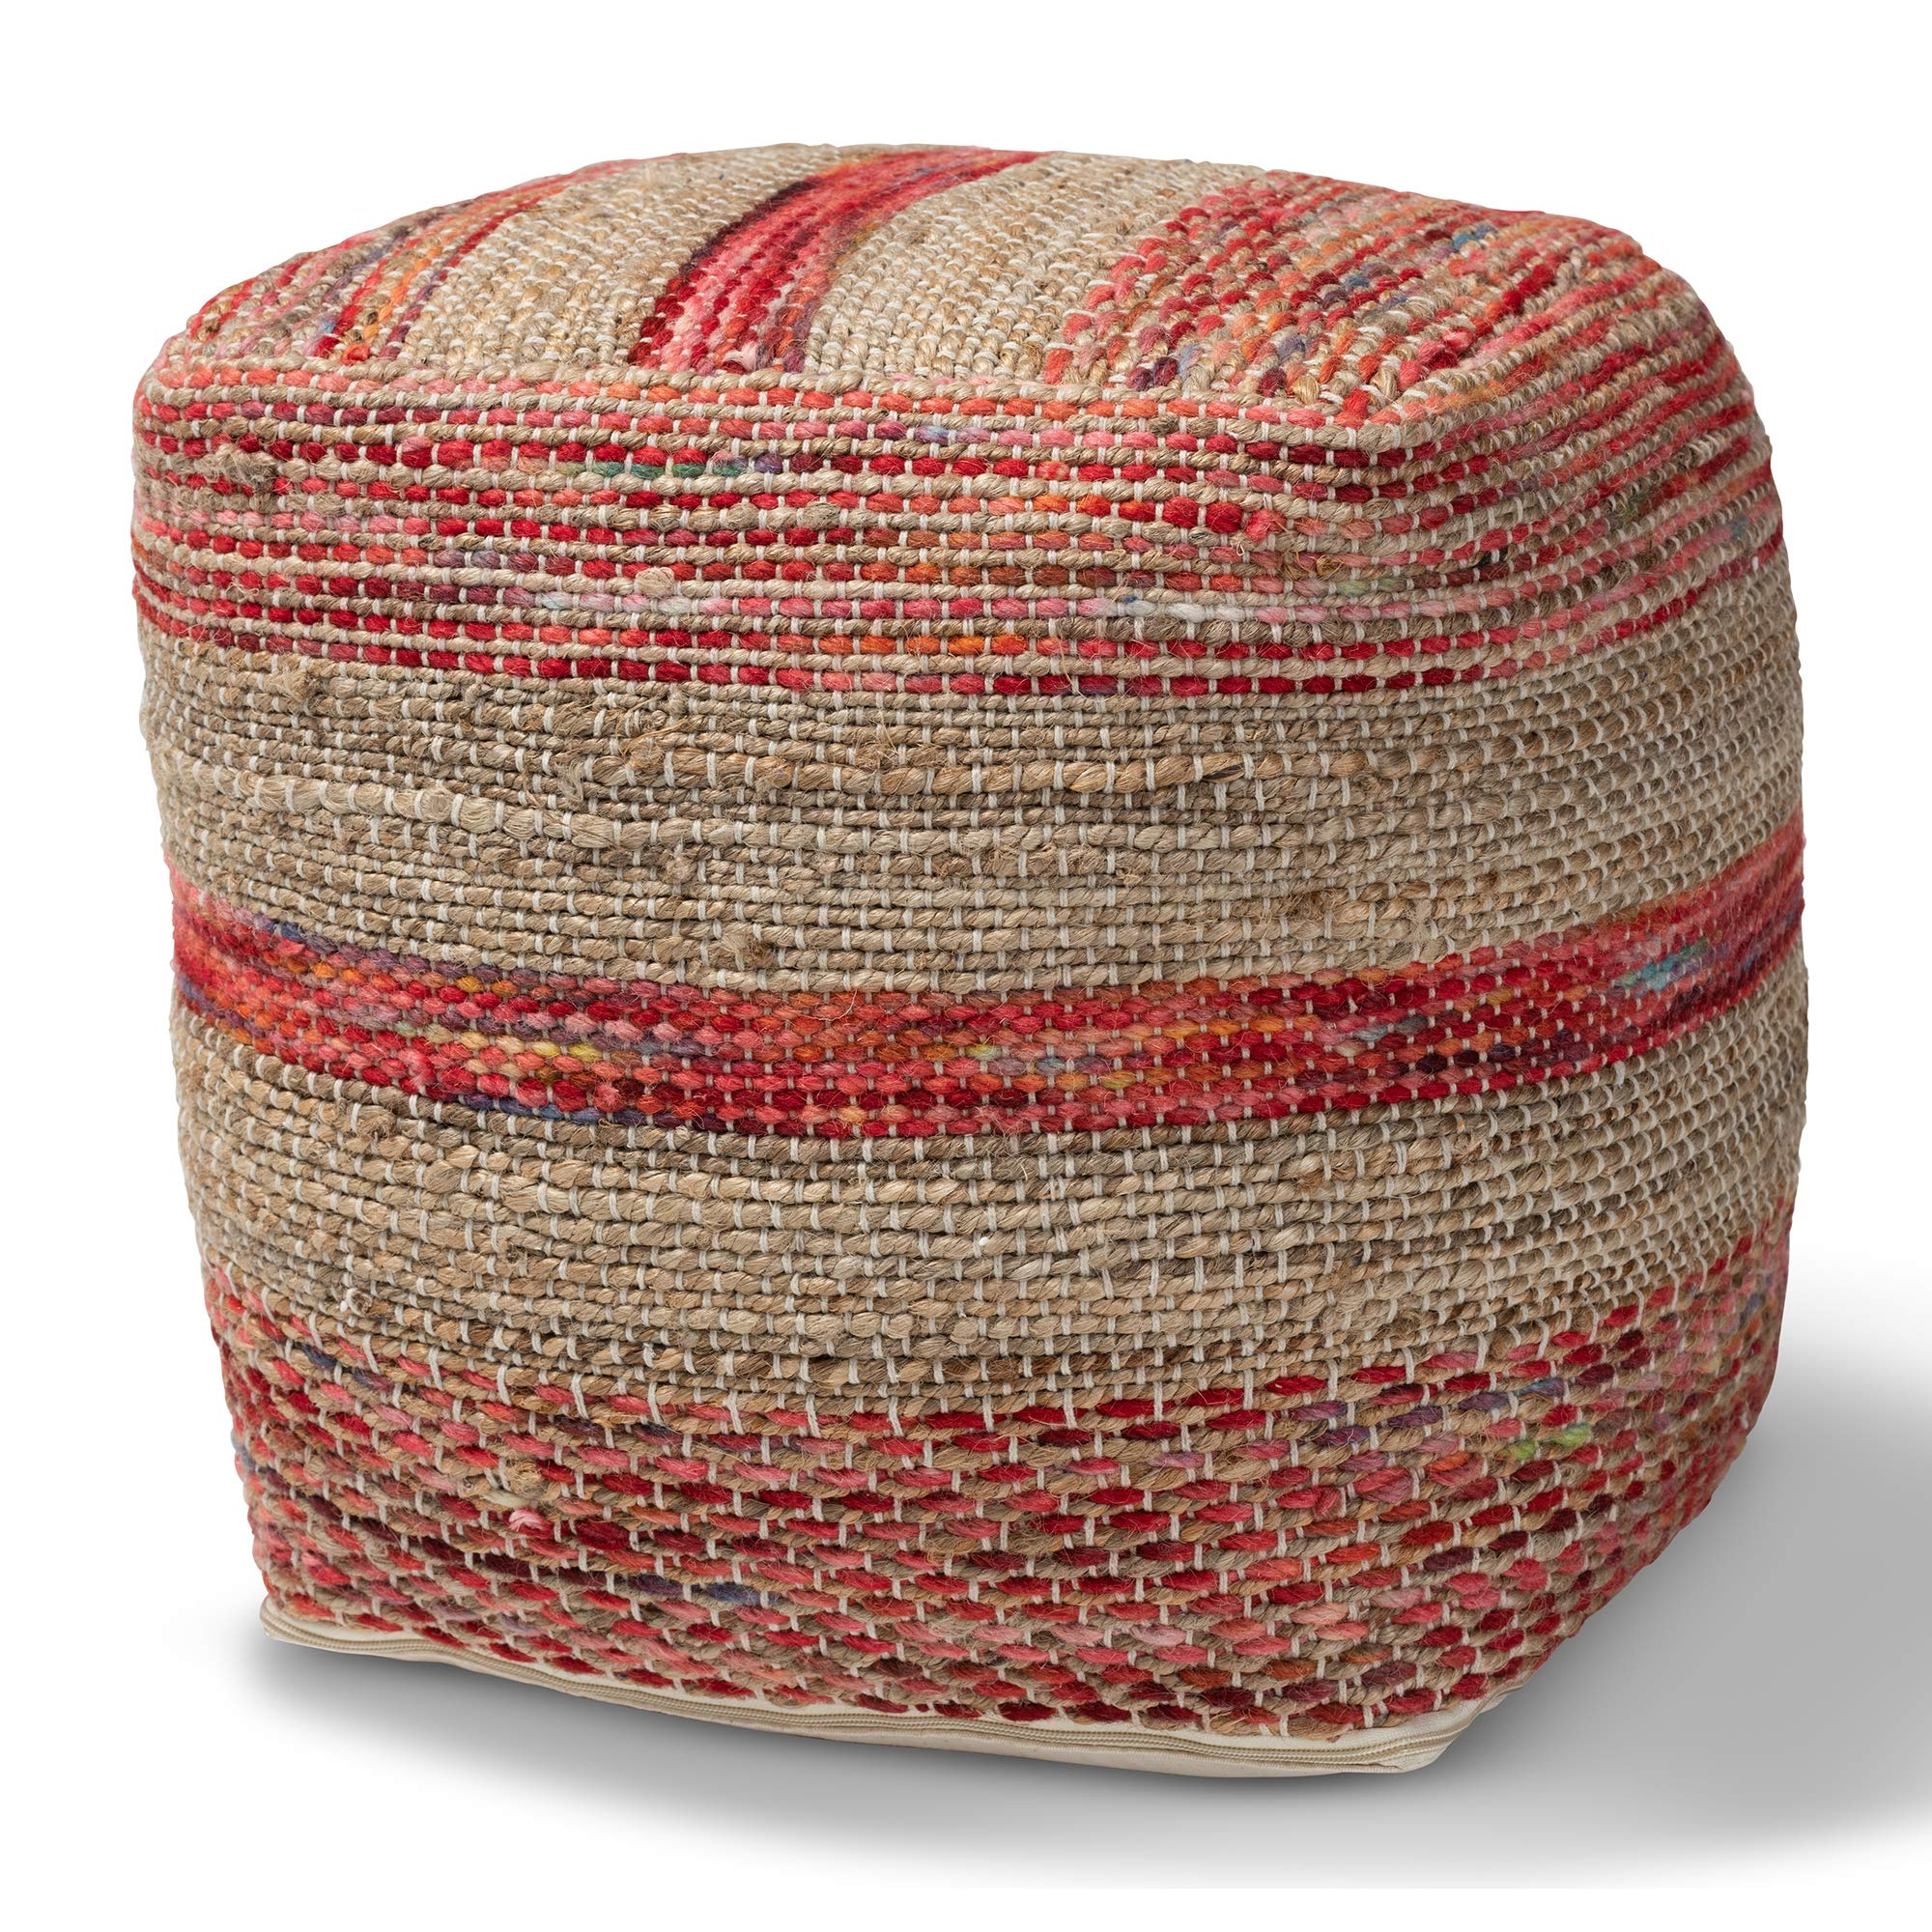 Baxton Studio Ottomans, One Size, Multi/Natural by Baxton Studio